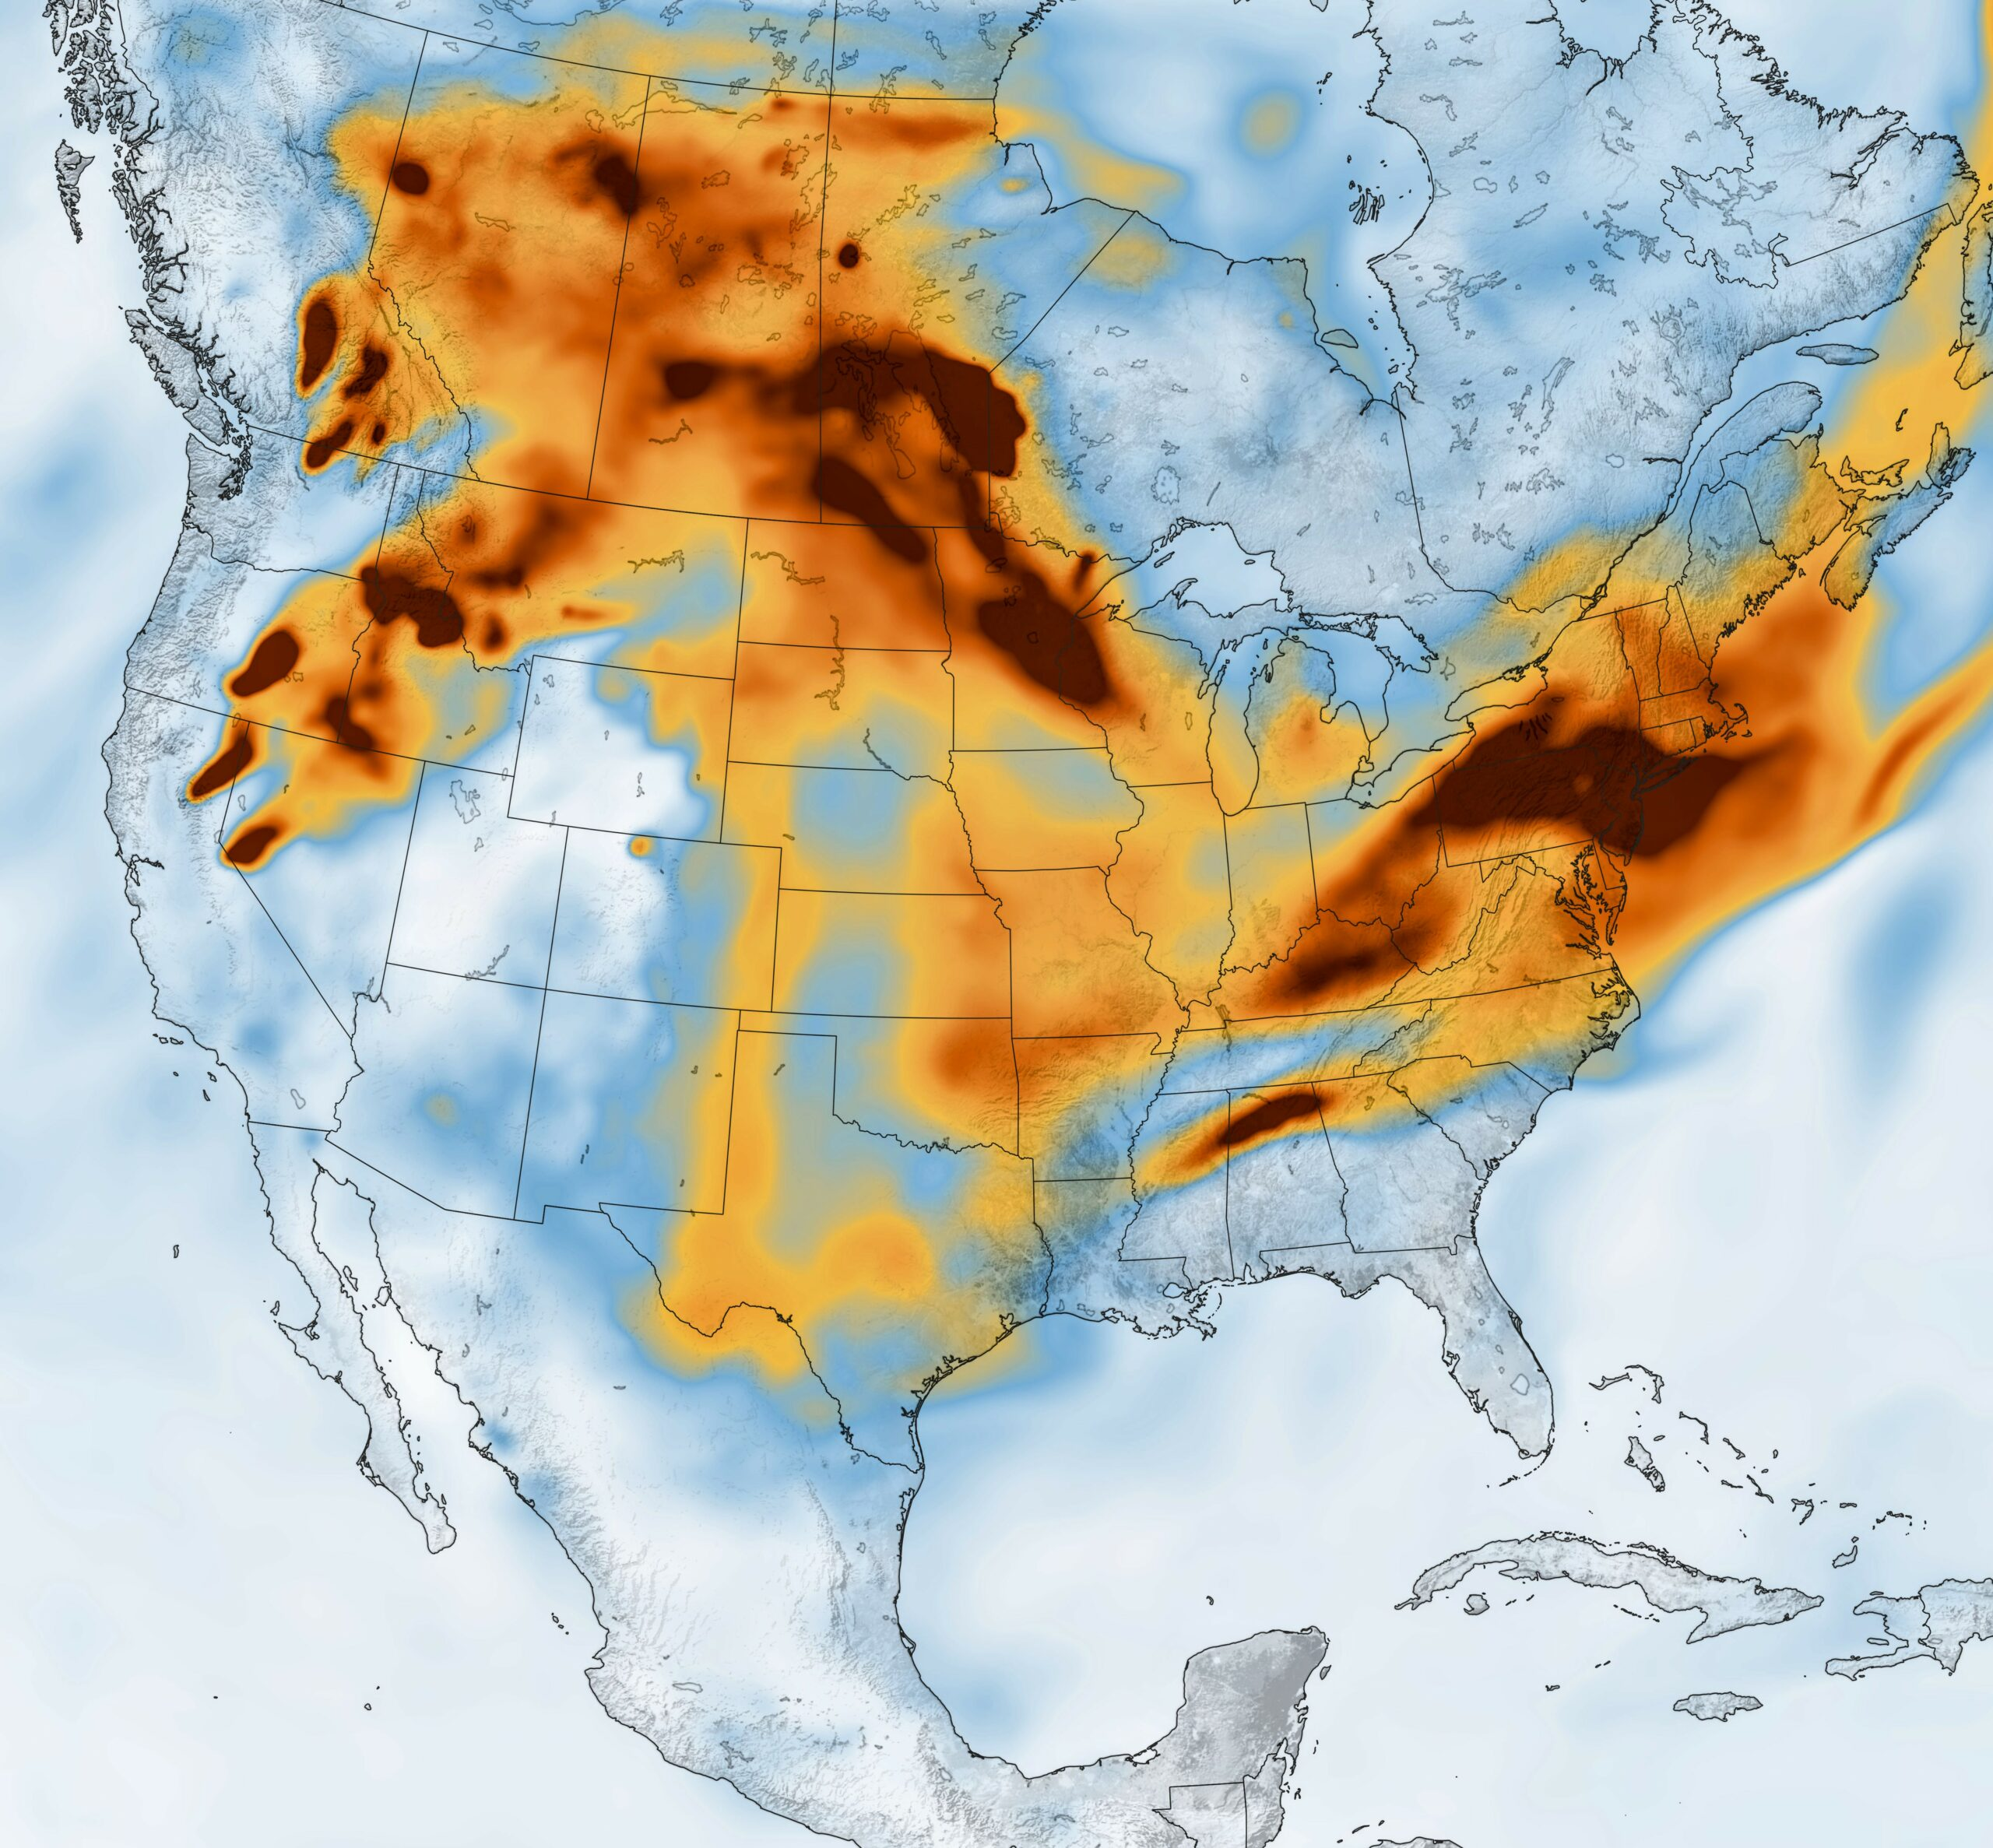 Today's Image of the Day from NASA Earth Observatory shows shows the concentration of black carbon particulates, or soot, over North America on July 21, 2021